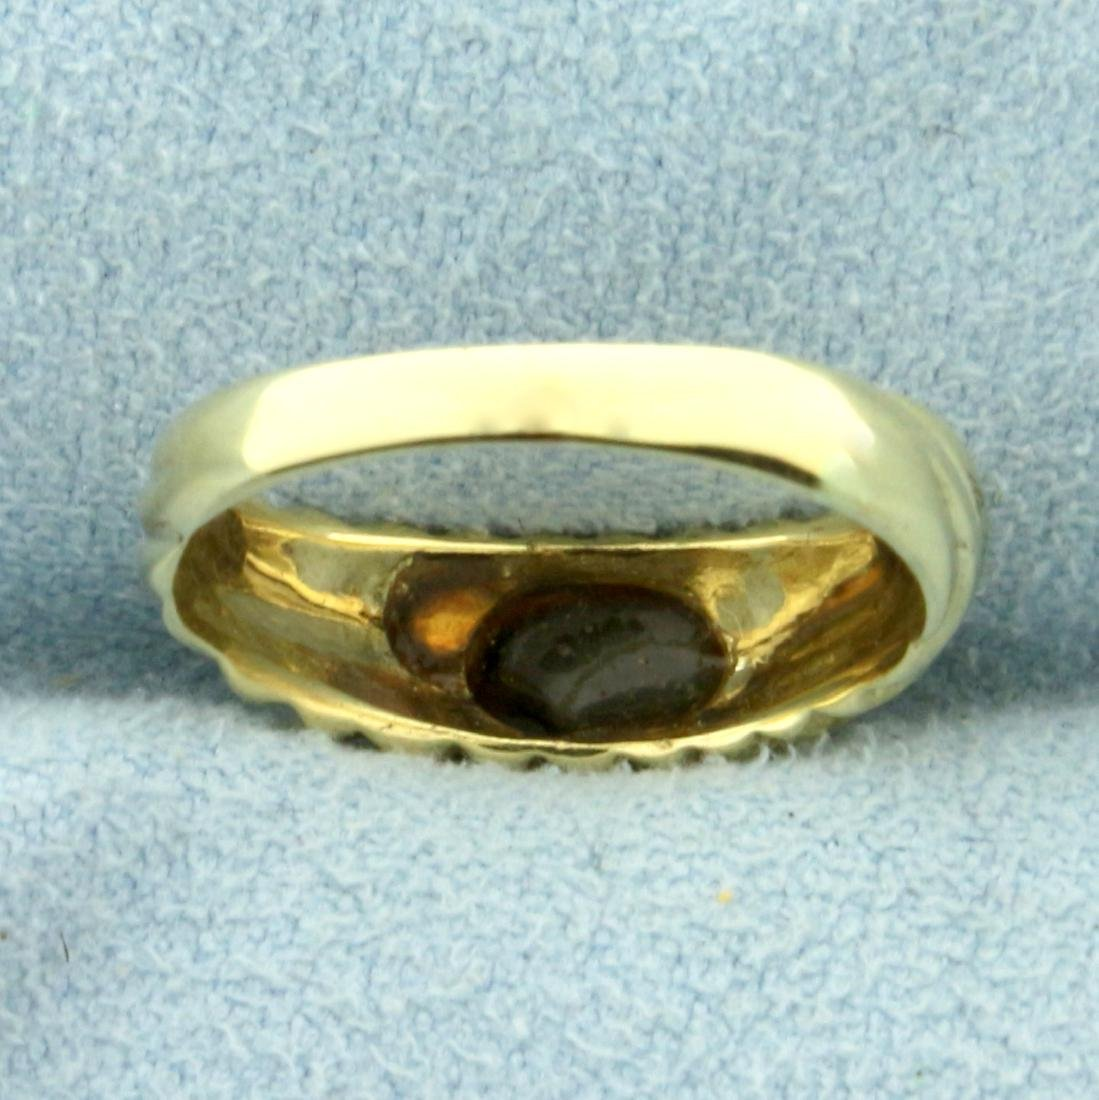 Cabochon Onyx Ring in 14K Yellow Gold - 4